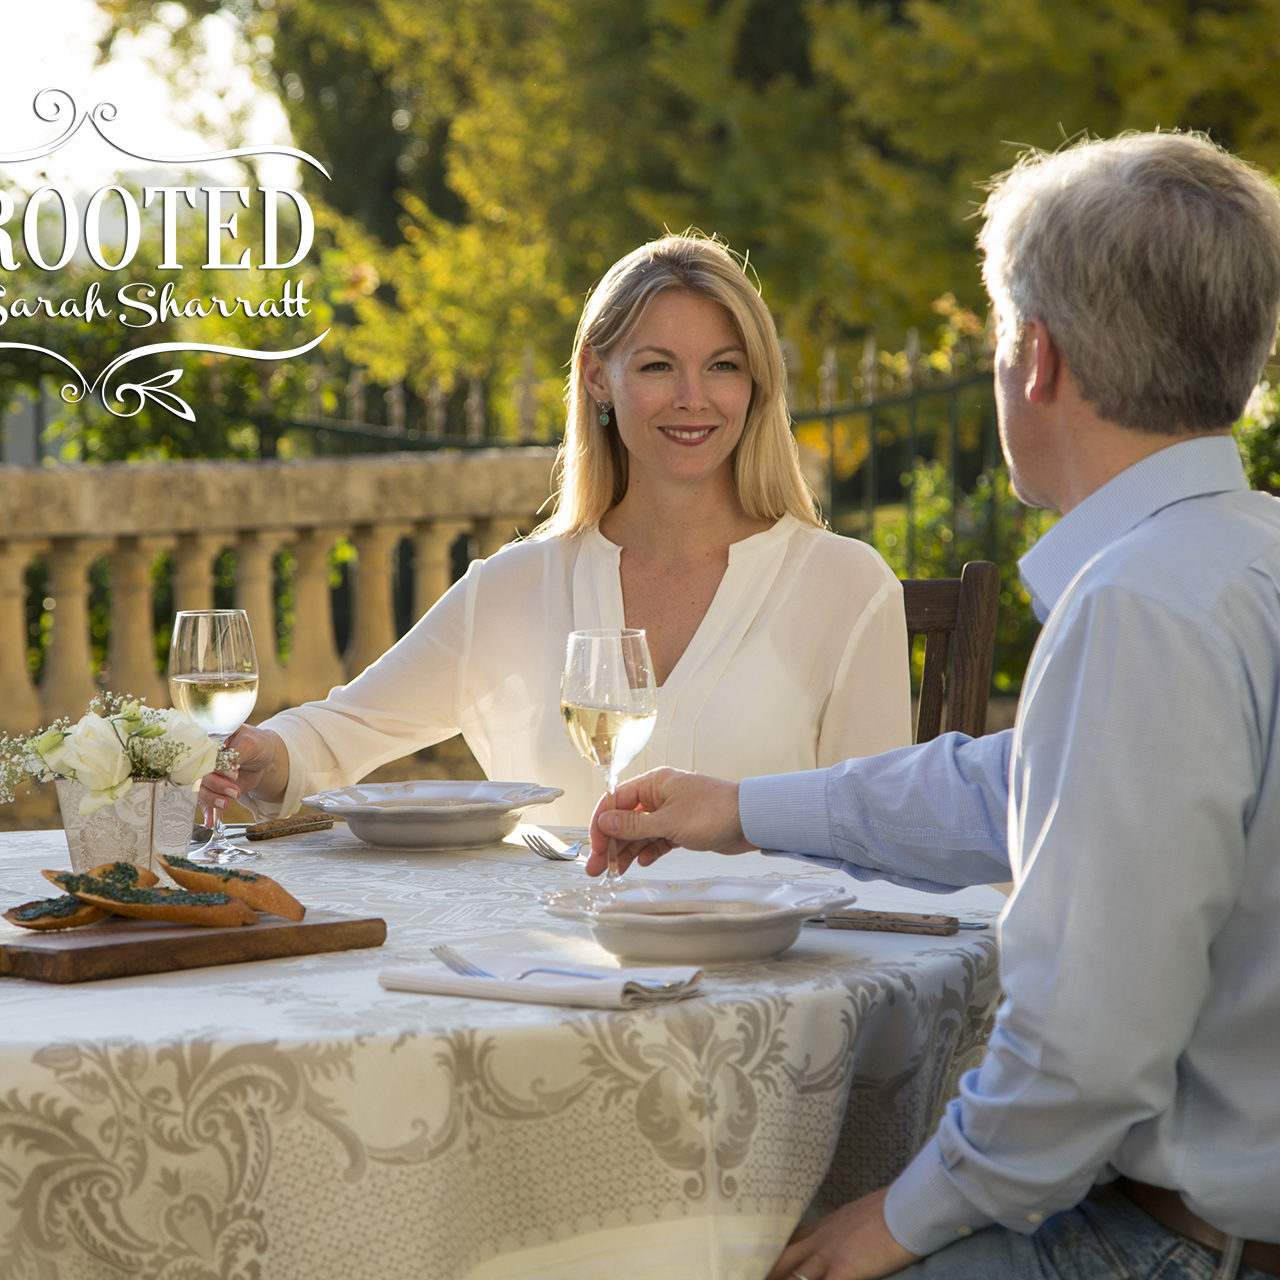 Host Sarah Sharratt and her husband Robert enjoy a romantic date night supper on the terrace of their chateau in rural France, as seen on Cooking Channel's UpRooted with Sarah Sharratt, Season 1.